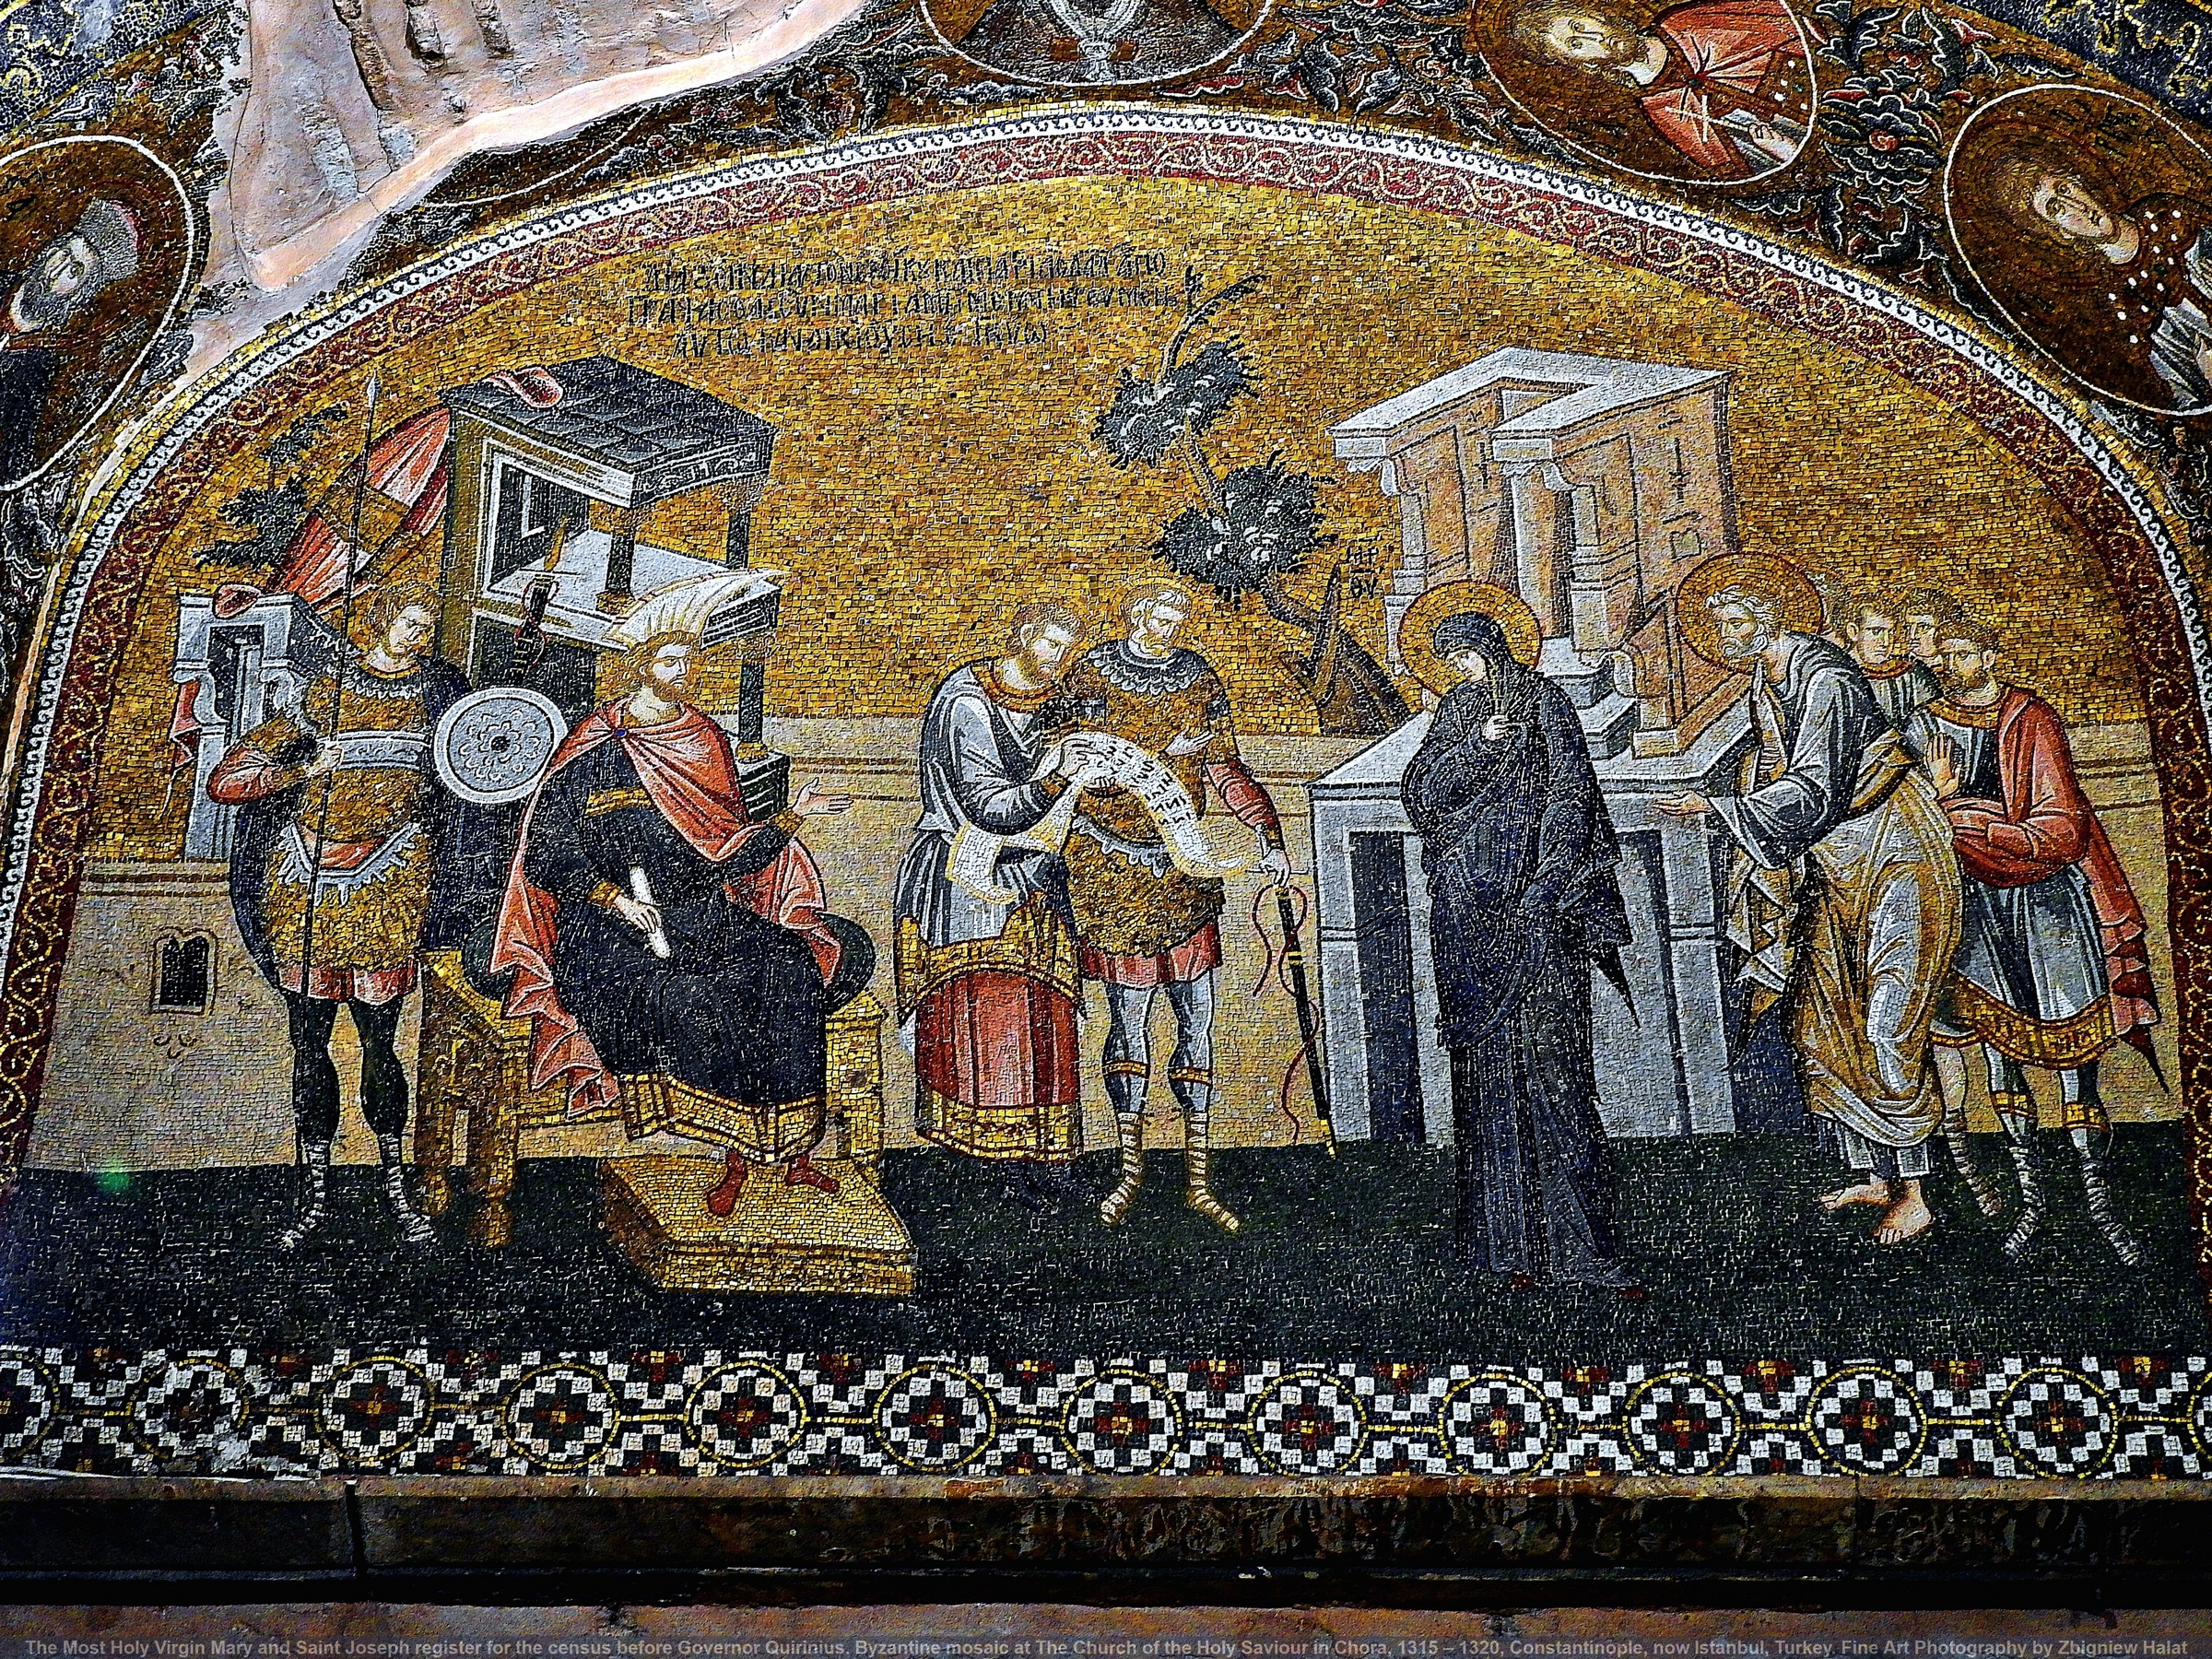 The Most Holy Virgin Mary and Saint Joseph register for the census before Governor Quirinius. Byzantine mosaic at The Church of the Holy Saviour in Chora (Greek: Ἐκκλησία τοῦ Ἁγίου Σωτῆρος ἐν τῇ Χώρᾳ; Turkish: Kariye Müzesi, Kariye Camii, Kariye Kilisesi), Constantinople 1315–20, now Istanbul, Turkey. Fine Art Photography by Zbigniew Halat